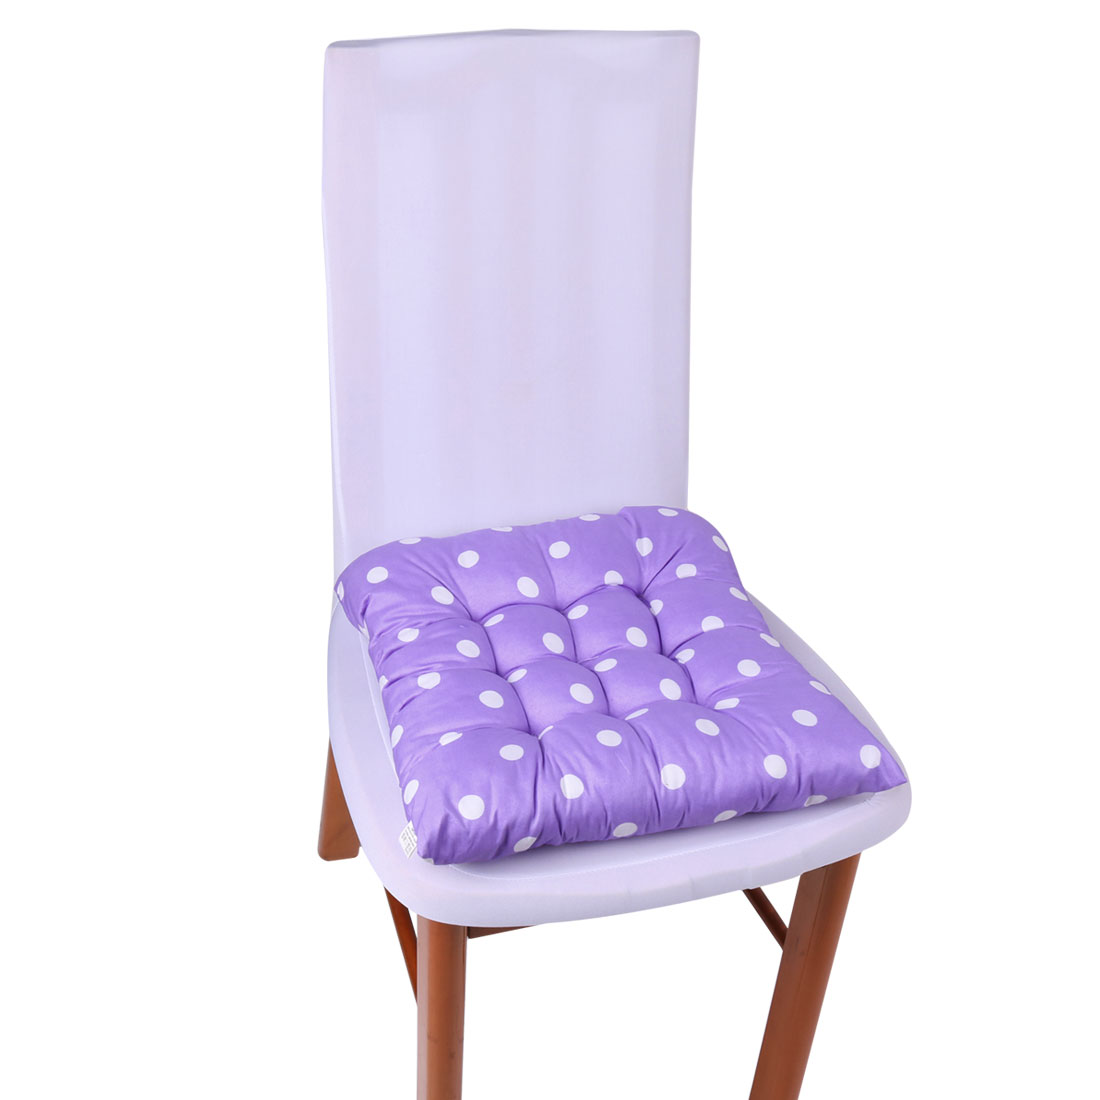 Unique Bargains Home Office Polyester Dot Print Back Support Seat Chair Pad Cushion Light Purple